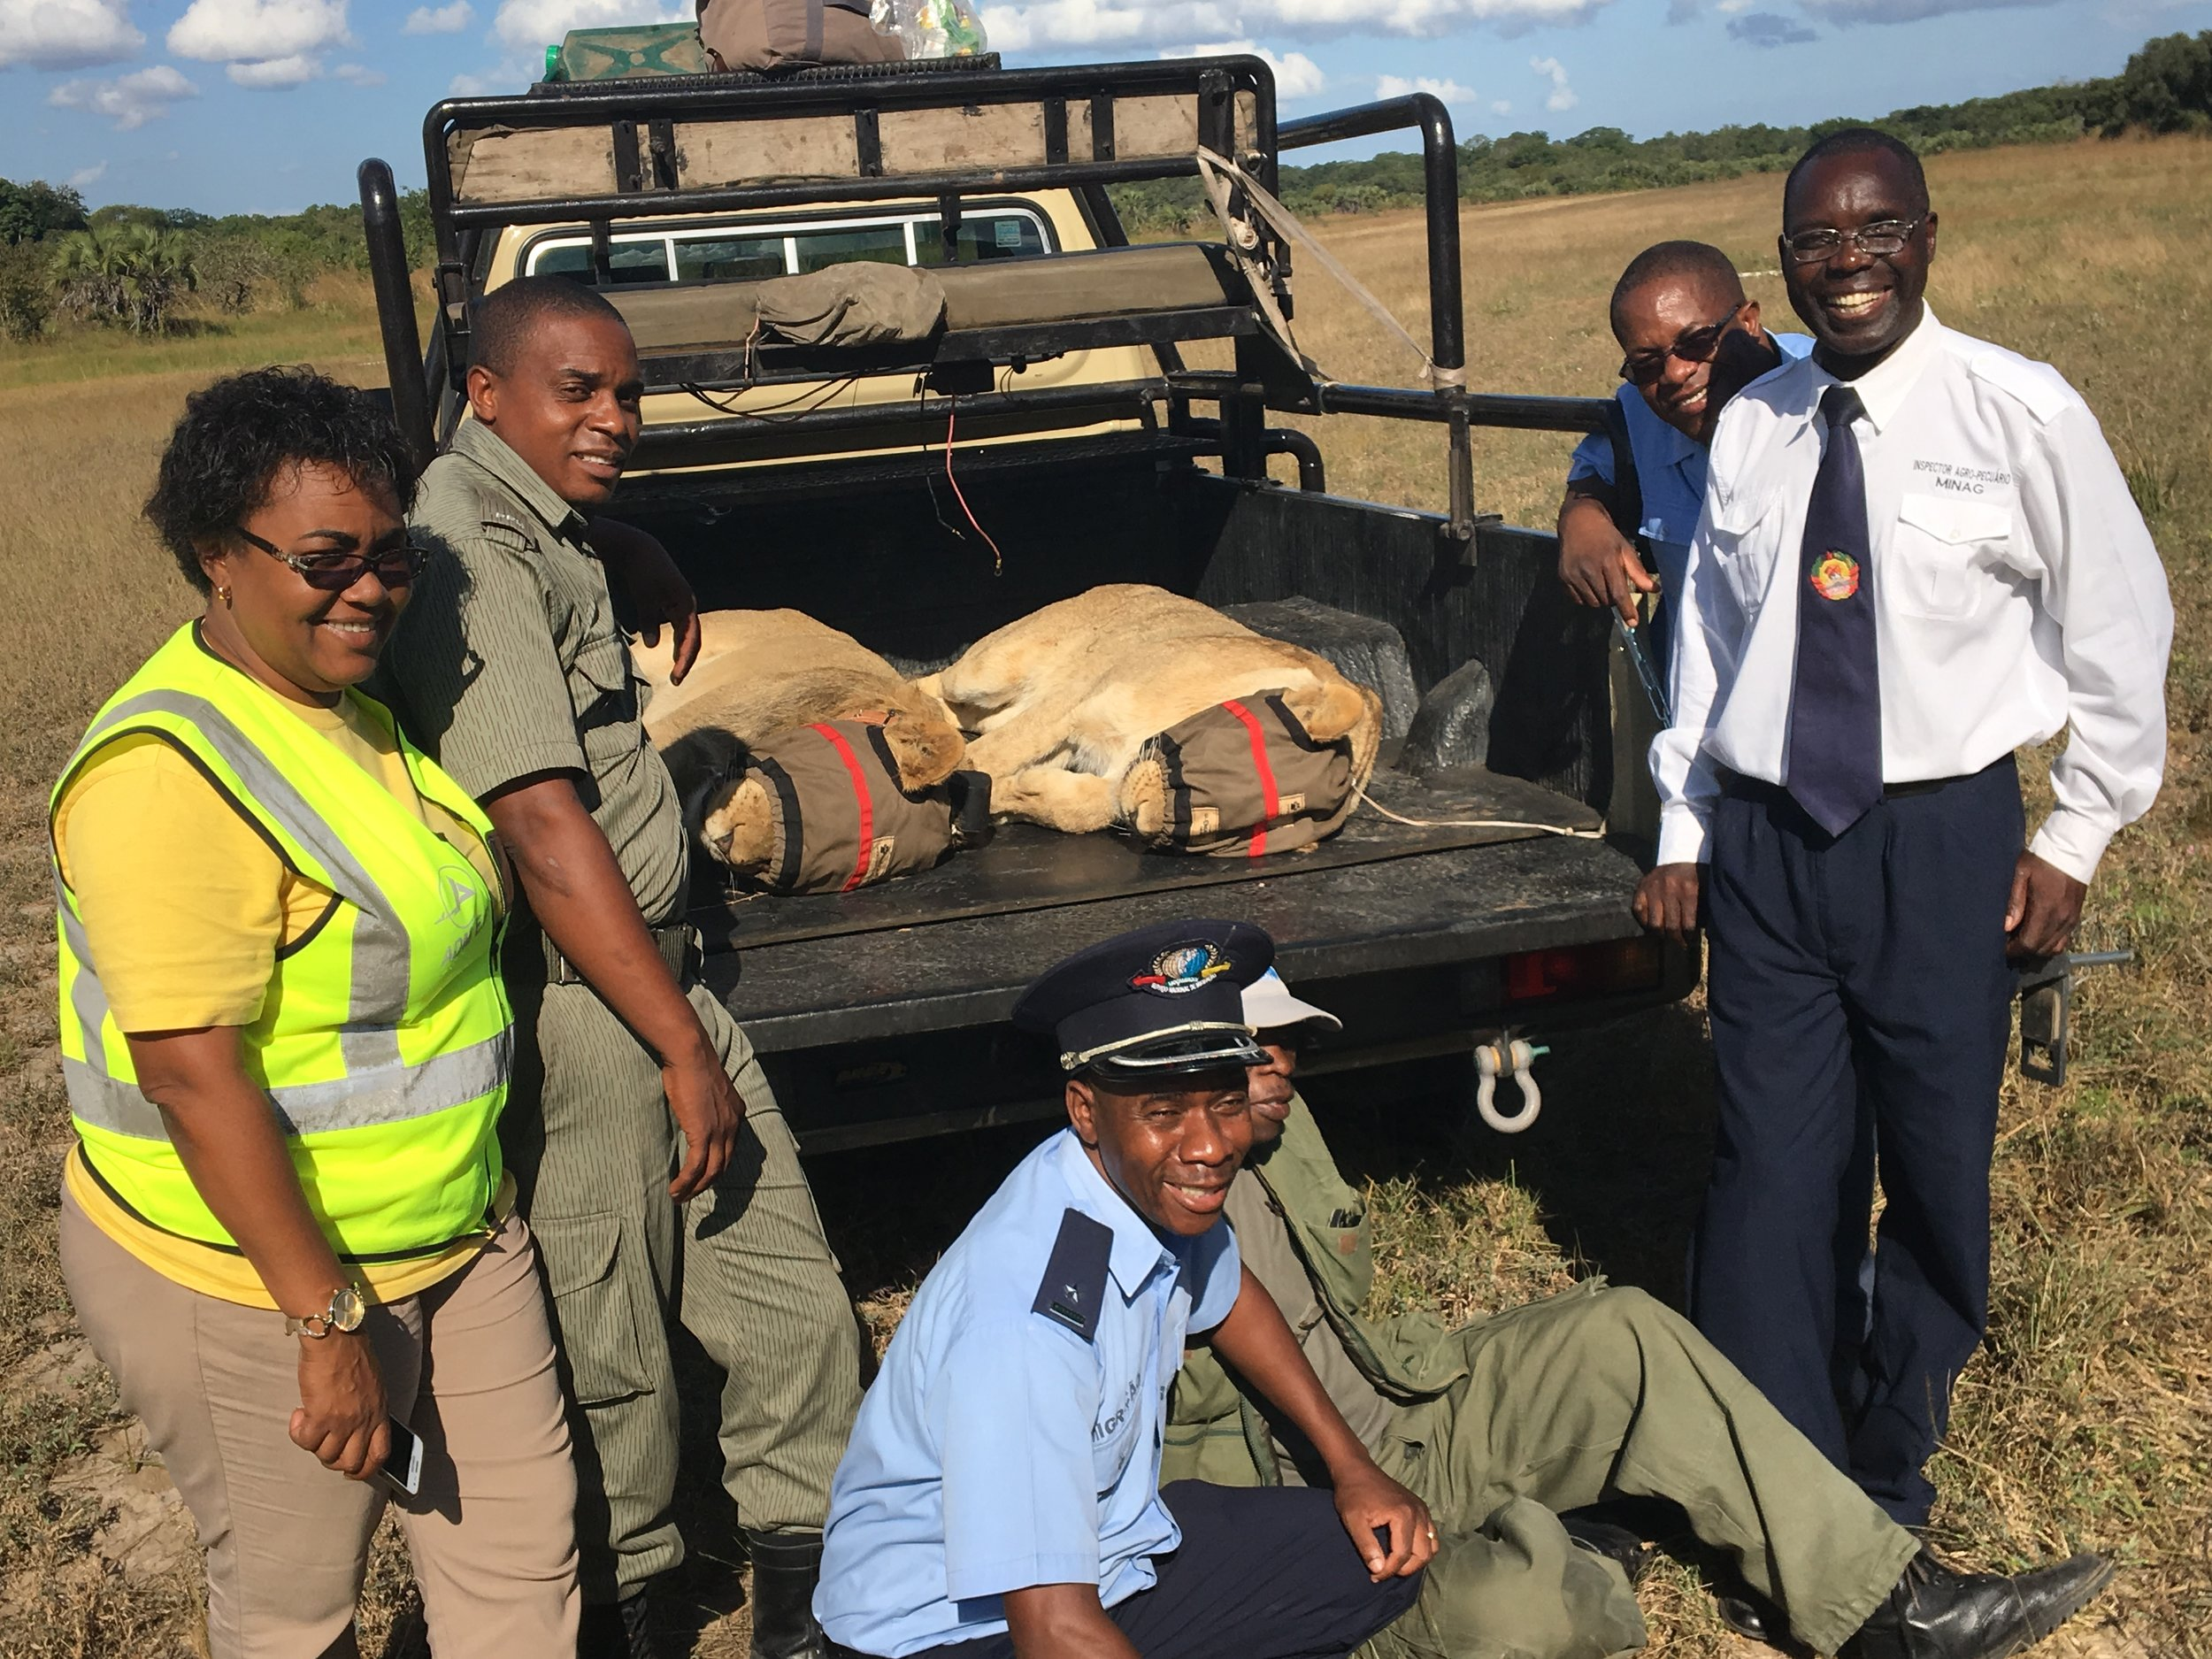 Customs, immigration and the veterinary department smiling and excited to be an integral part of this operation